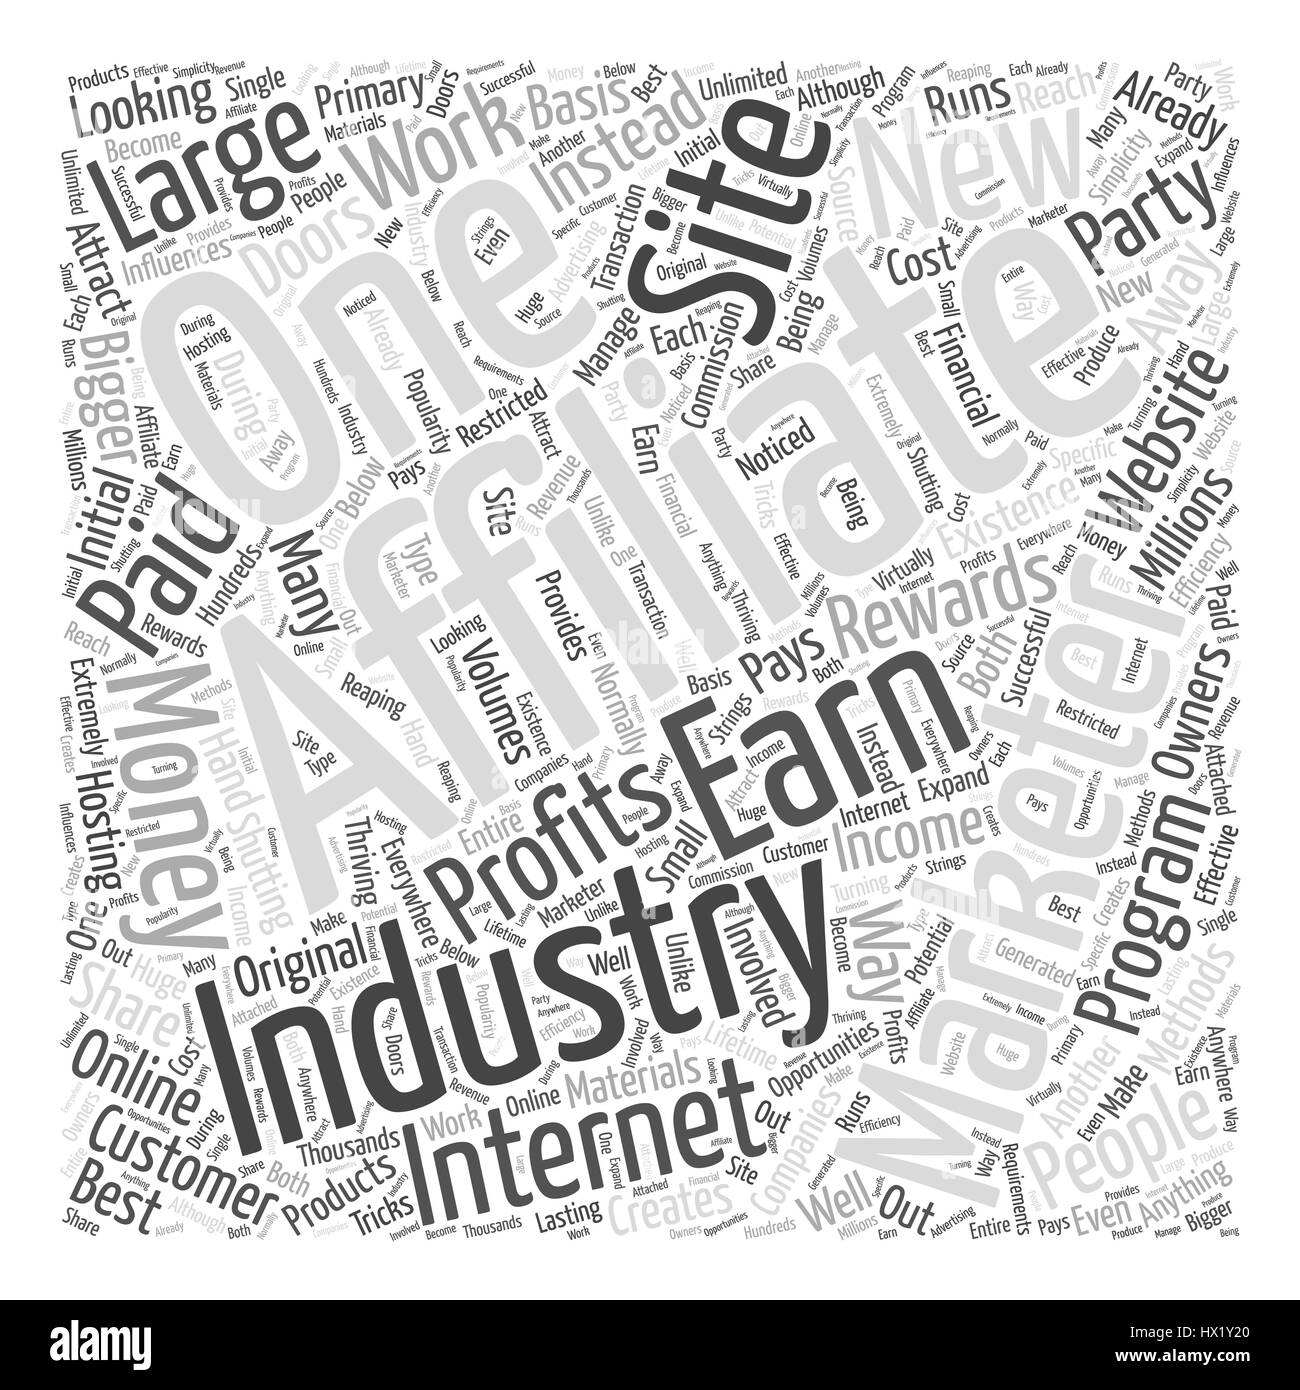 Affiliate Marketing Internet Industry Word Cloud Concept - Stock Image